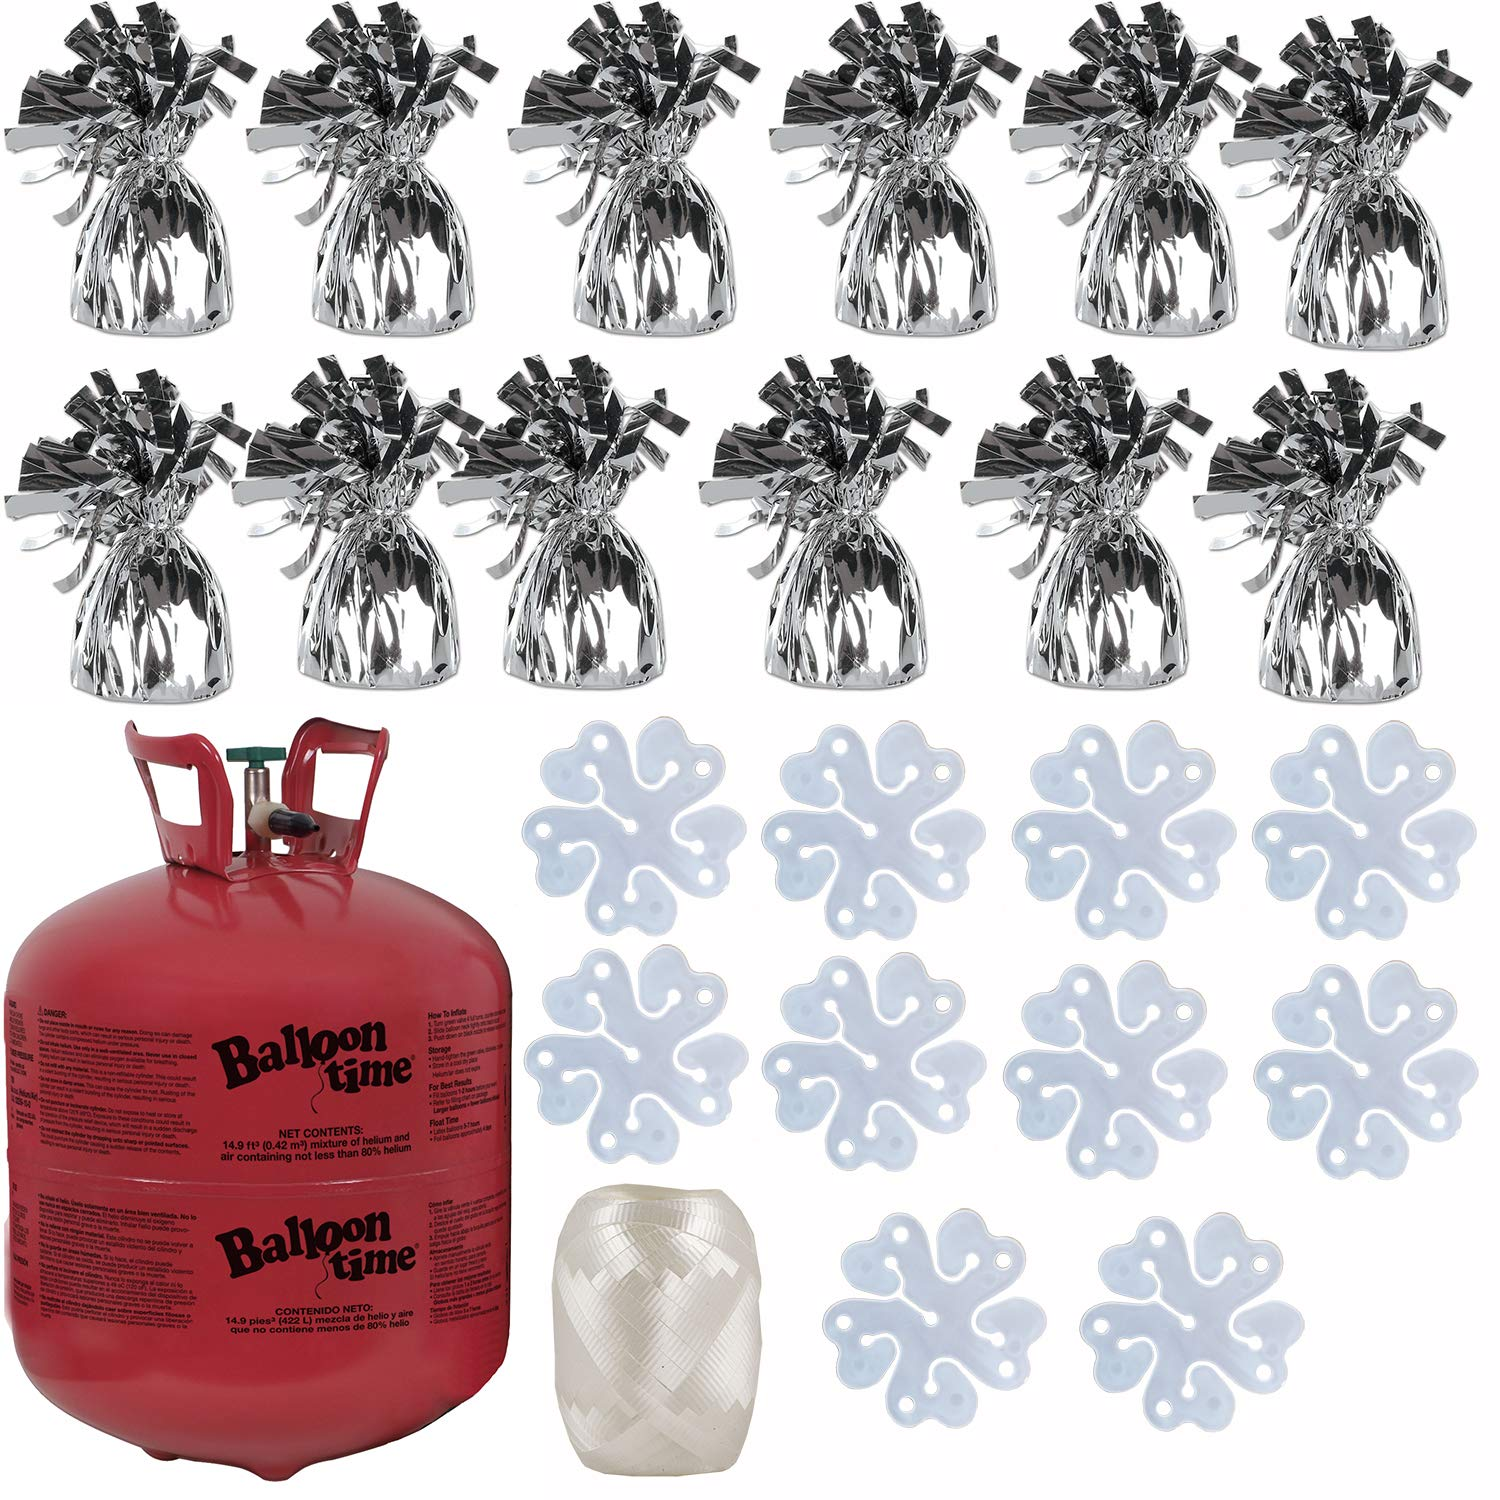 Balloon Time Disposable Helium Tank 14.9 cu.ft - 12 Silver Balloon Weights + 10 Flower Shape Balloon Clips + Curling Ribbon